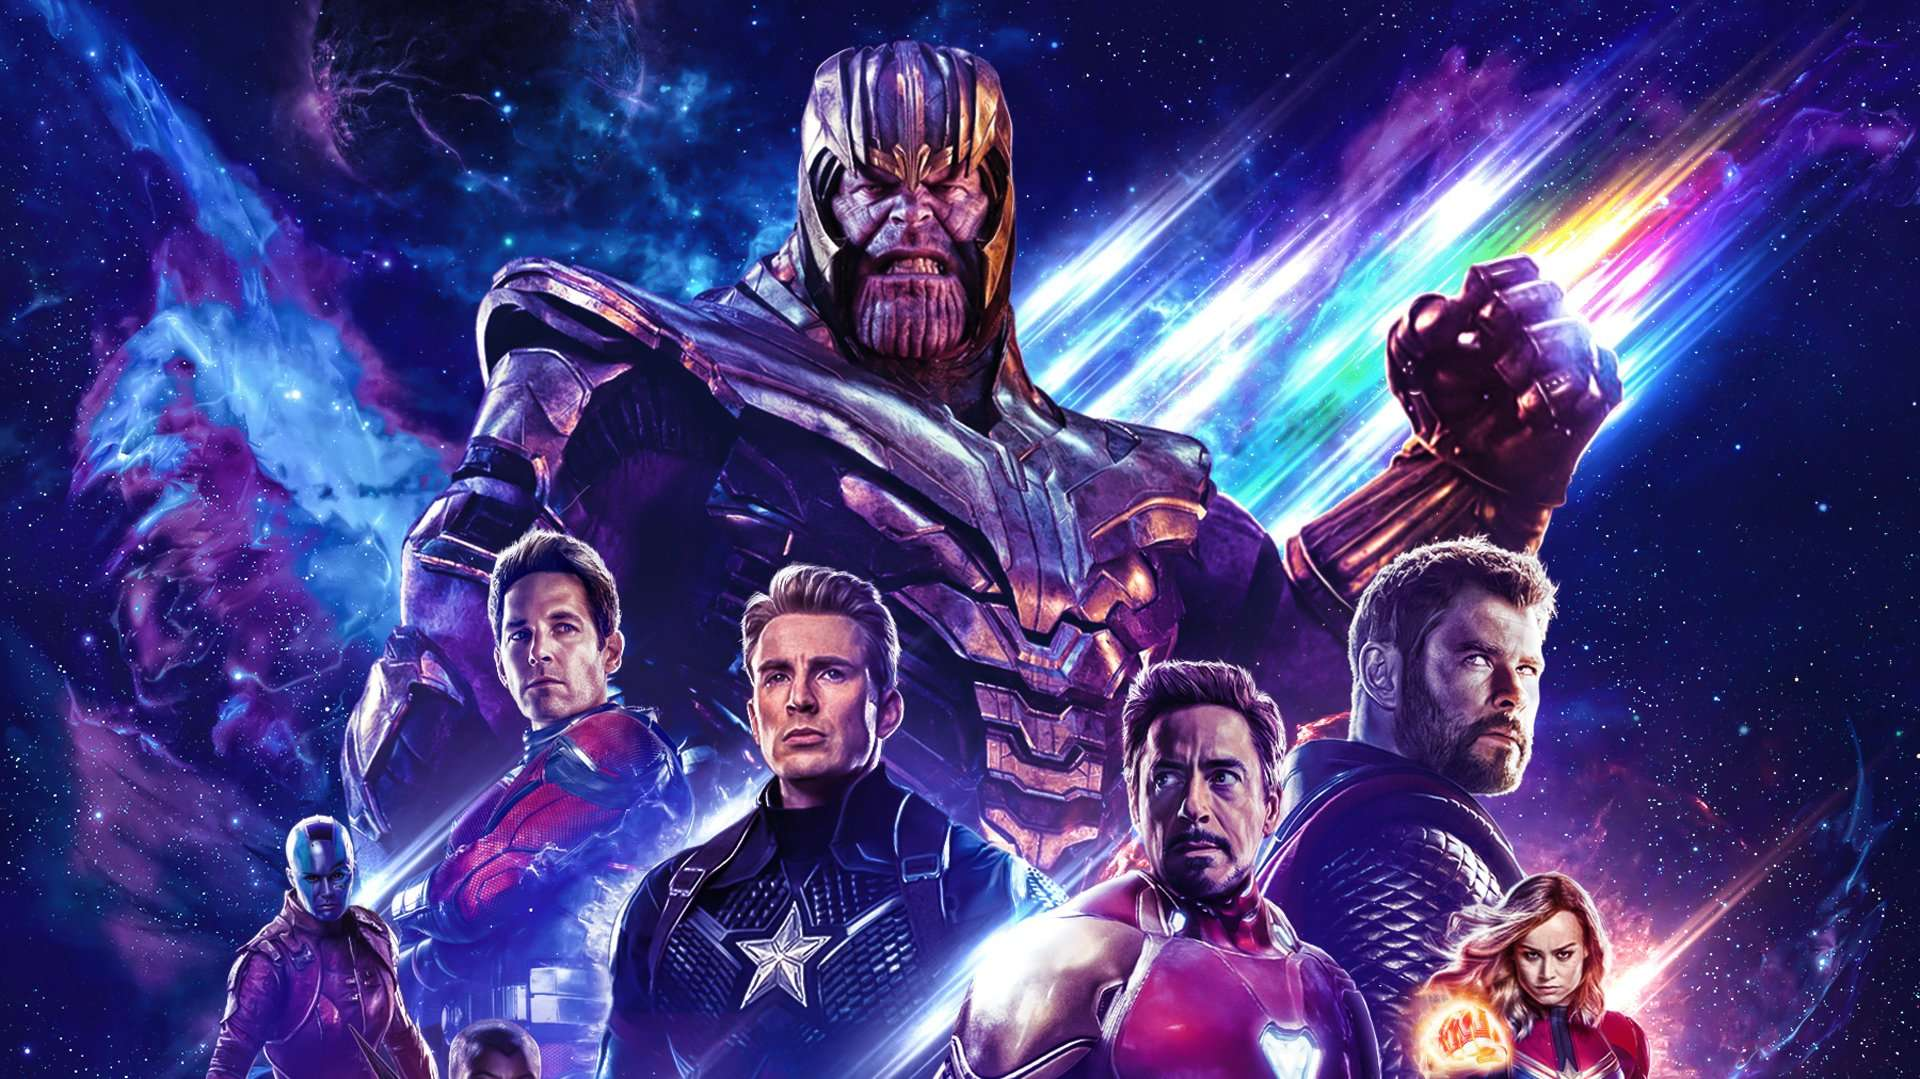 Official Avengers Endgame Music Video For Portals Released